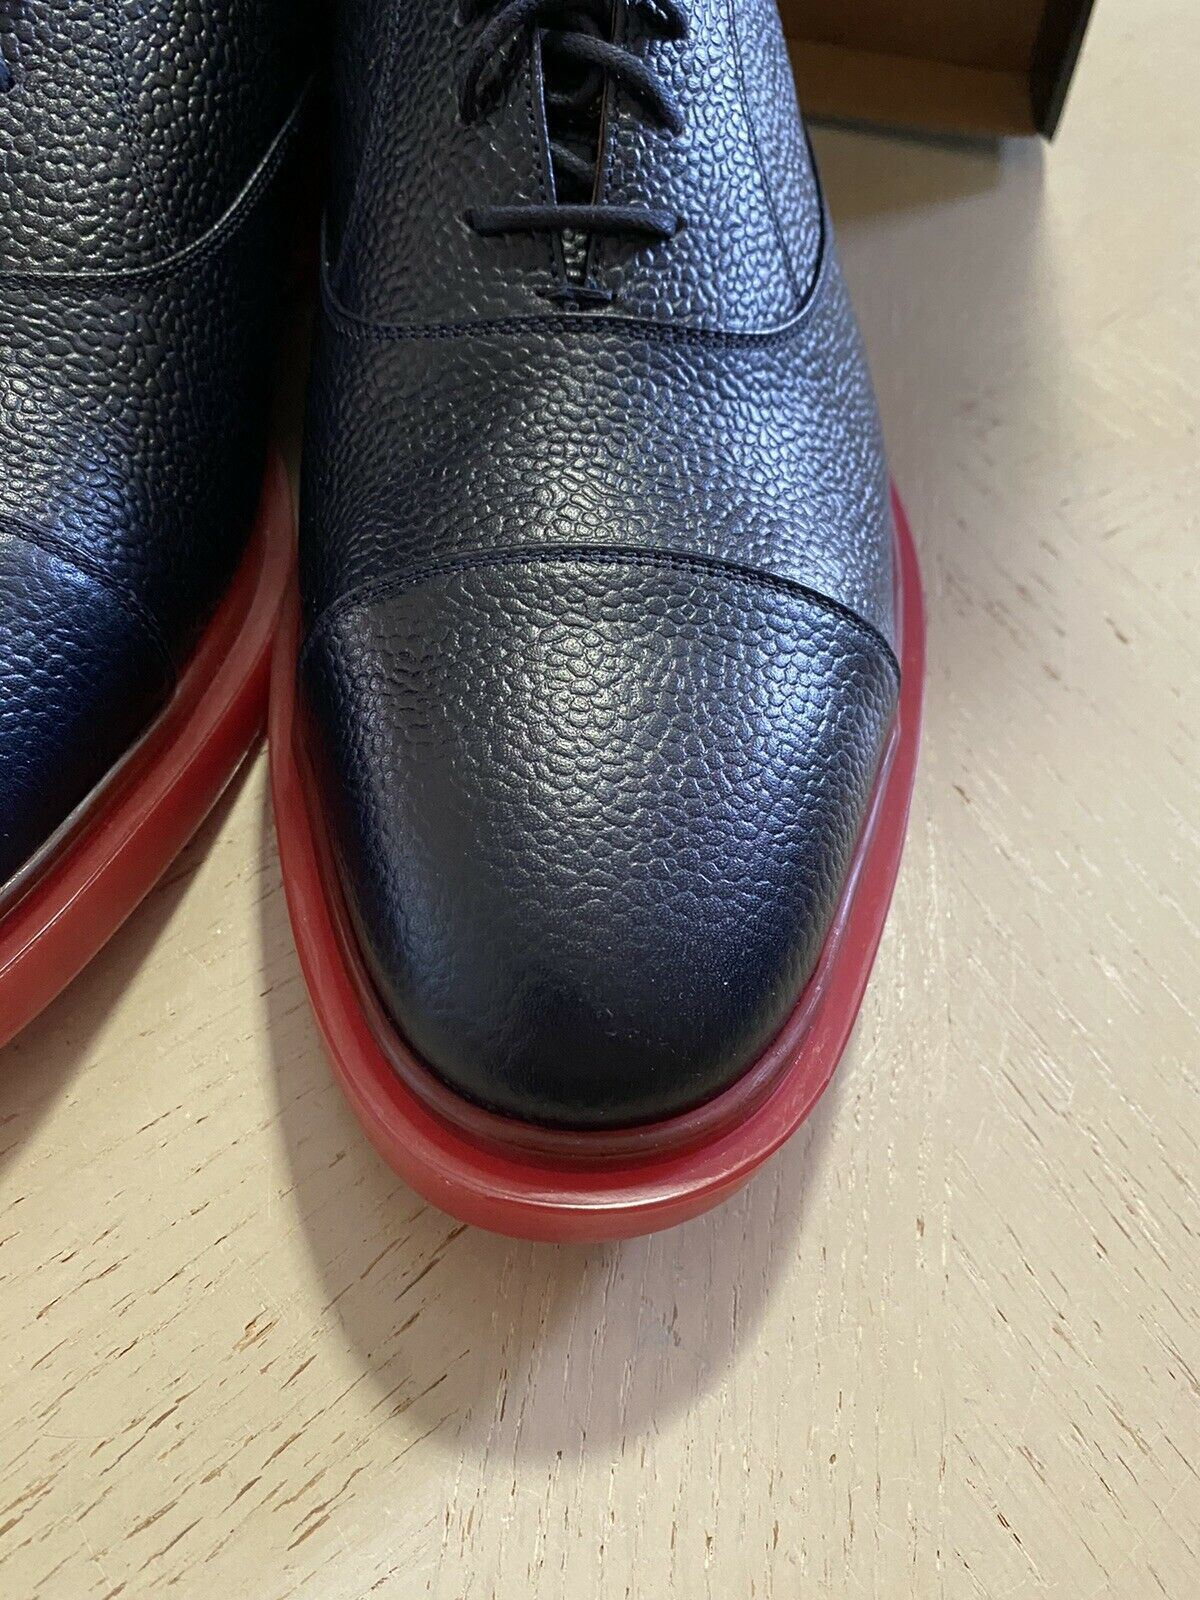 New $890 Thom Browne Oxford Leather Shoes Black 10 US ( 43 Eu ) Italy